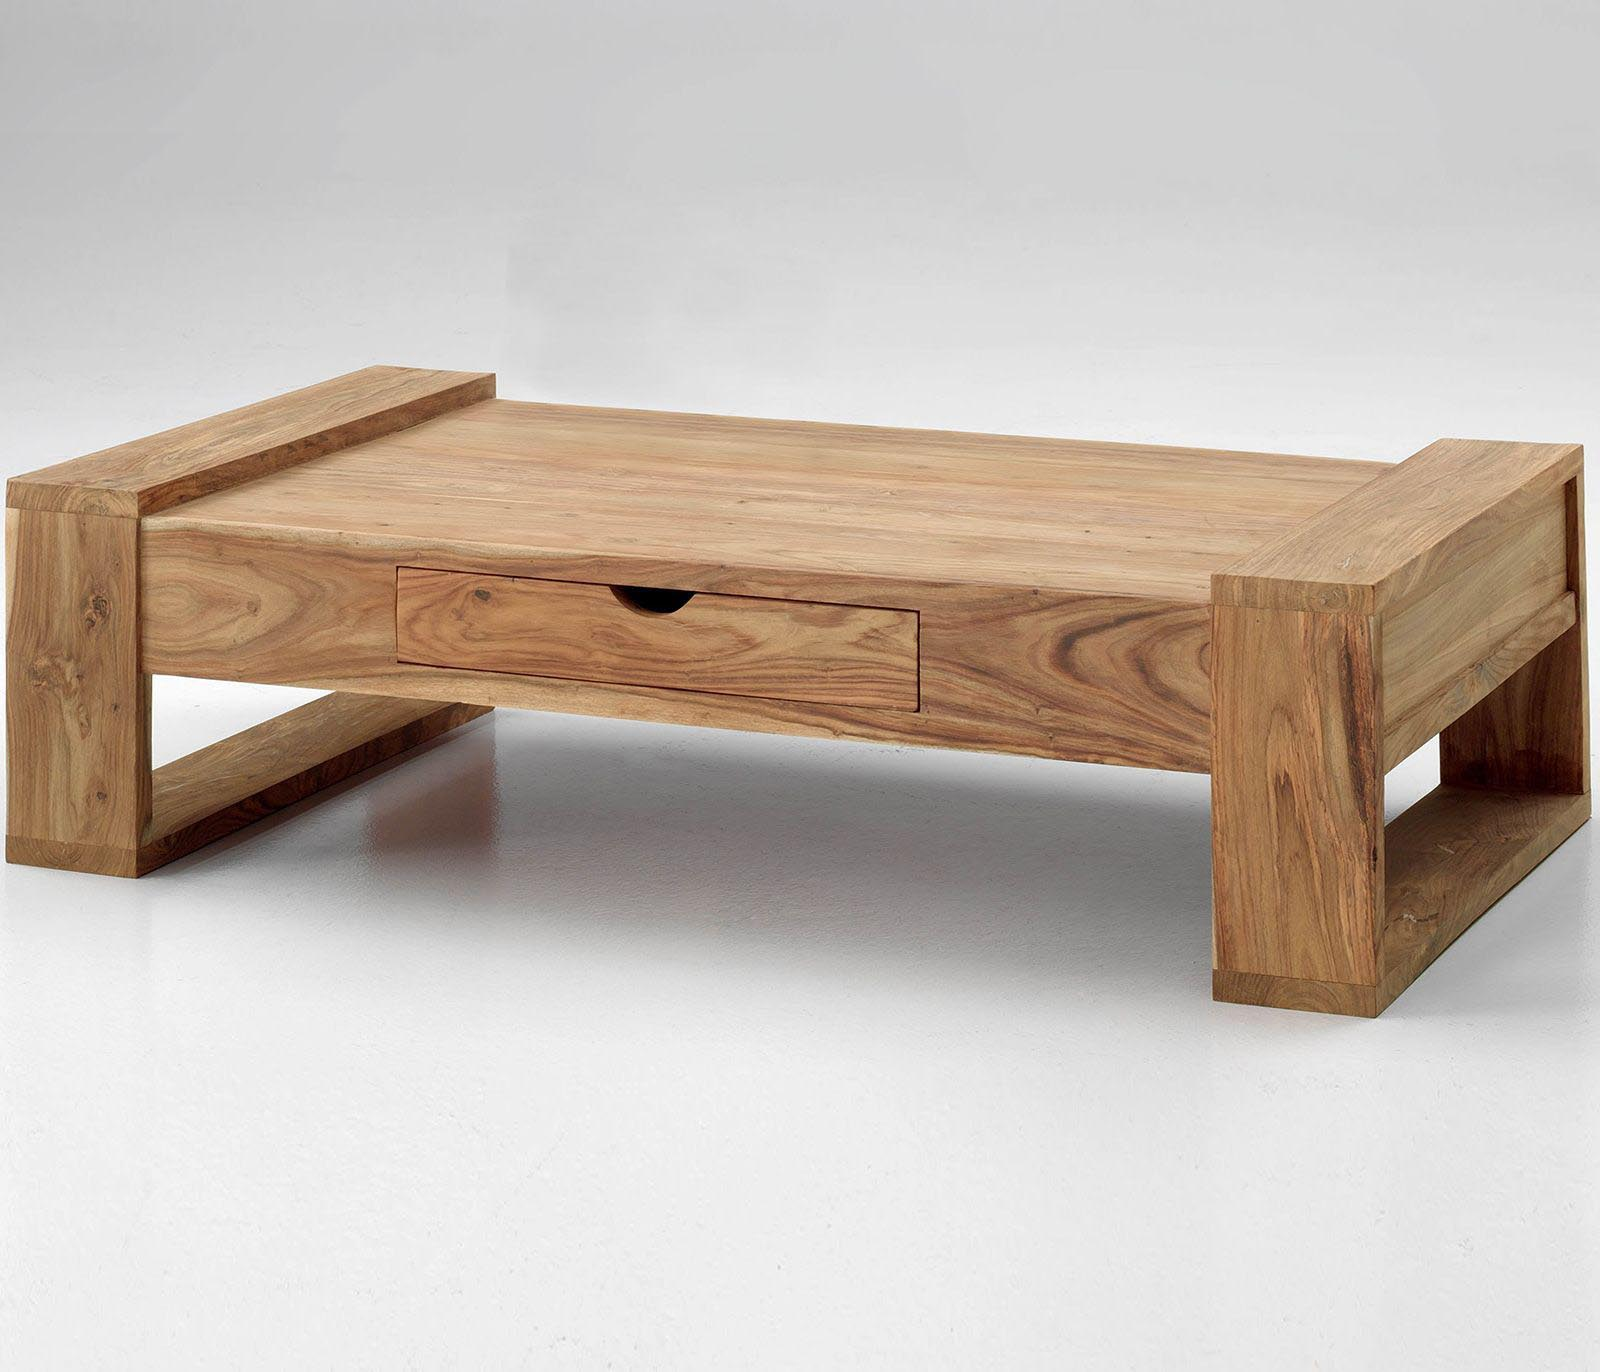 Modern wood table design -  Small Low Coffee Table Design Ideas